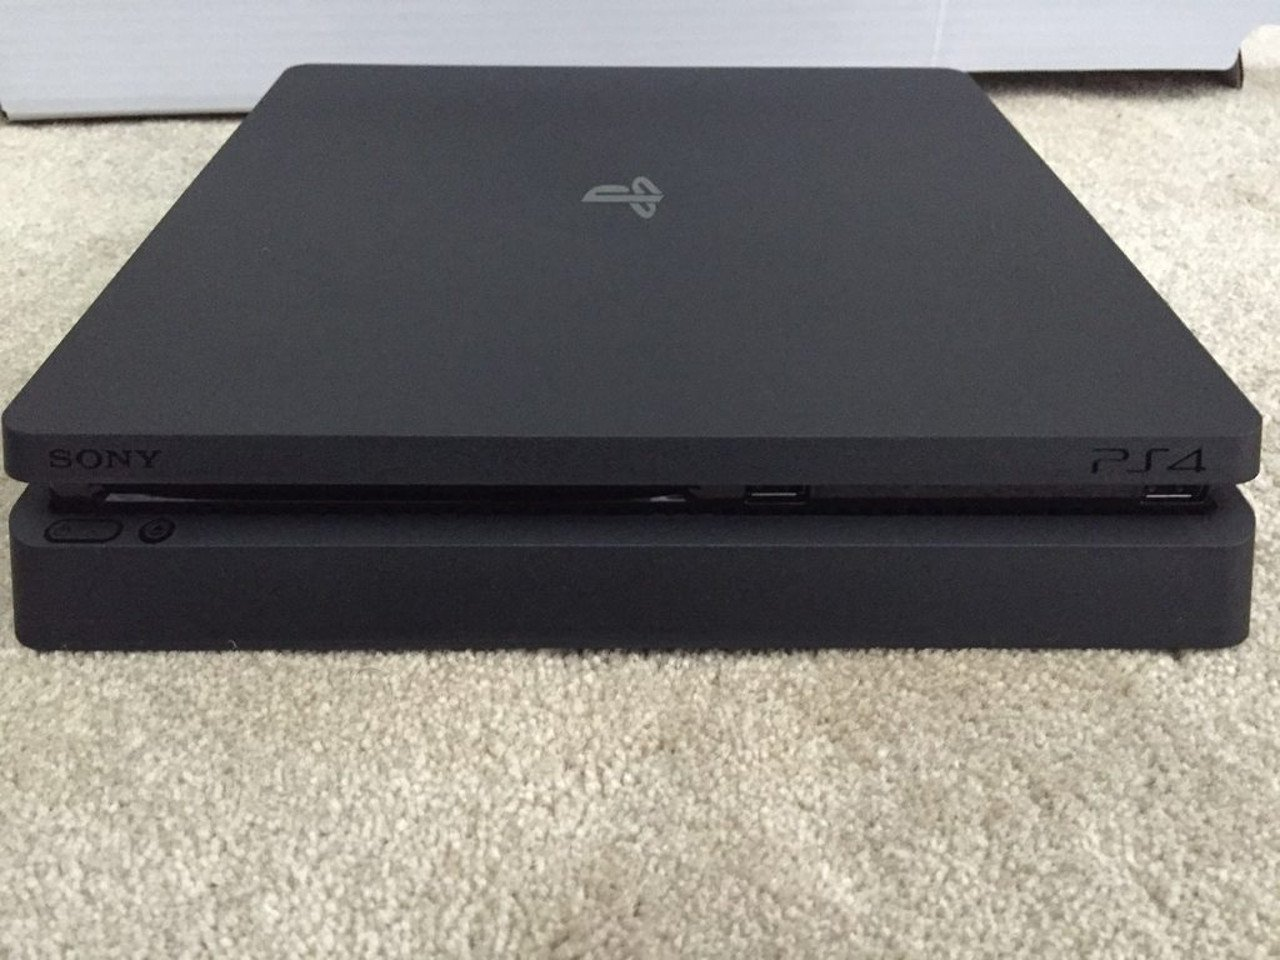 PS4 Slim sarà svelata al PlayStation Meeting di settembre?